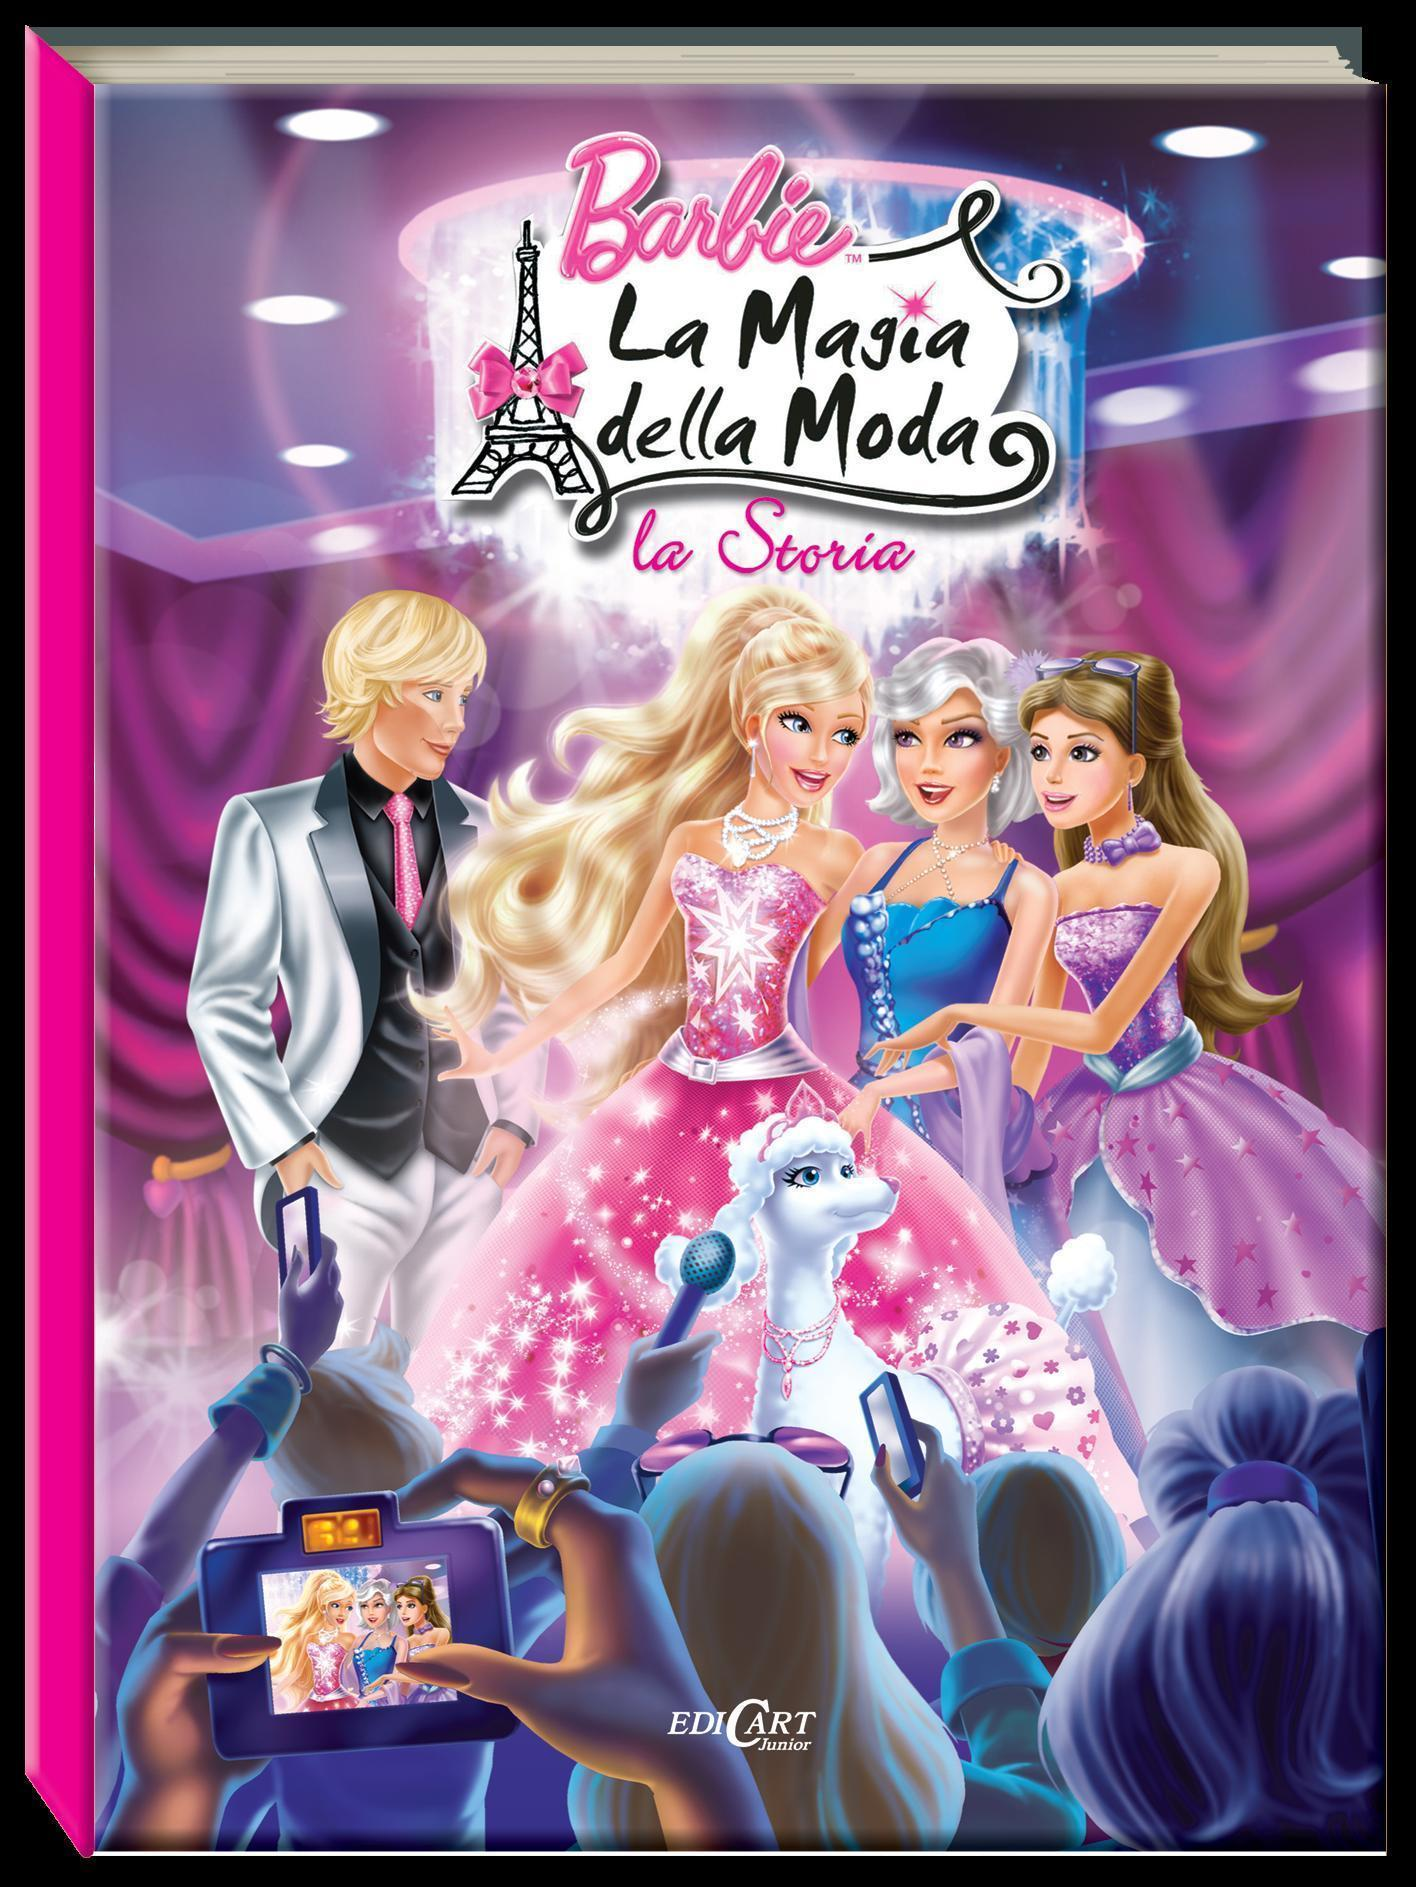 Barbie A Fashion Fairytale Full Movie In English Barbie Fashion Fairytale